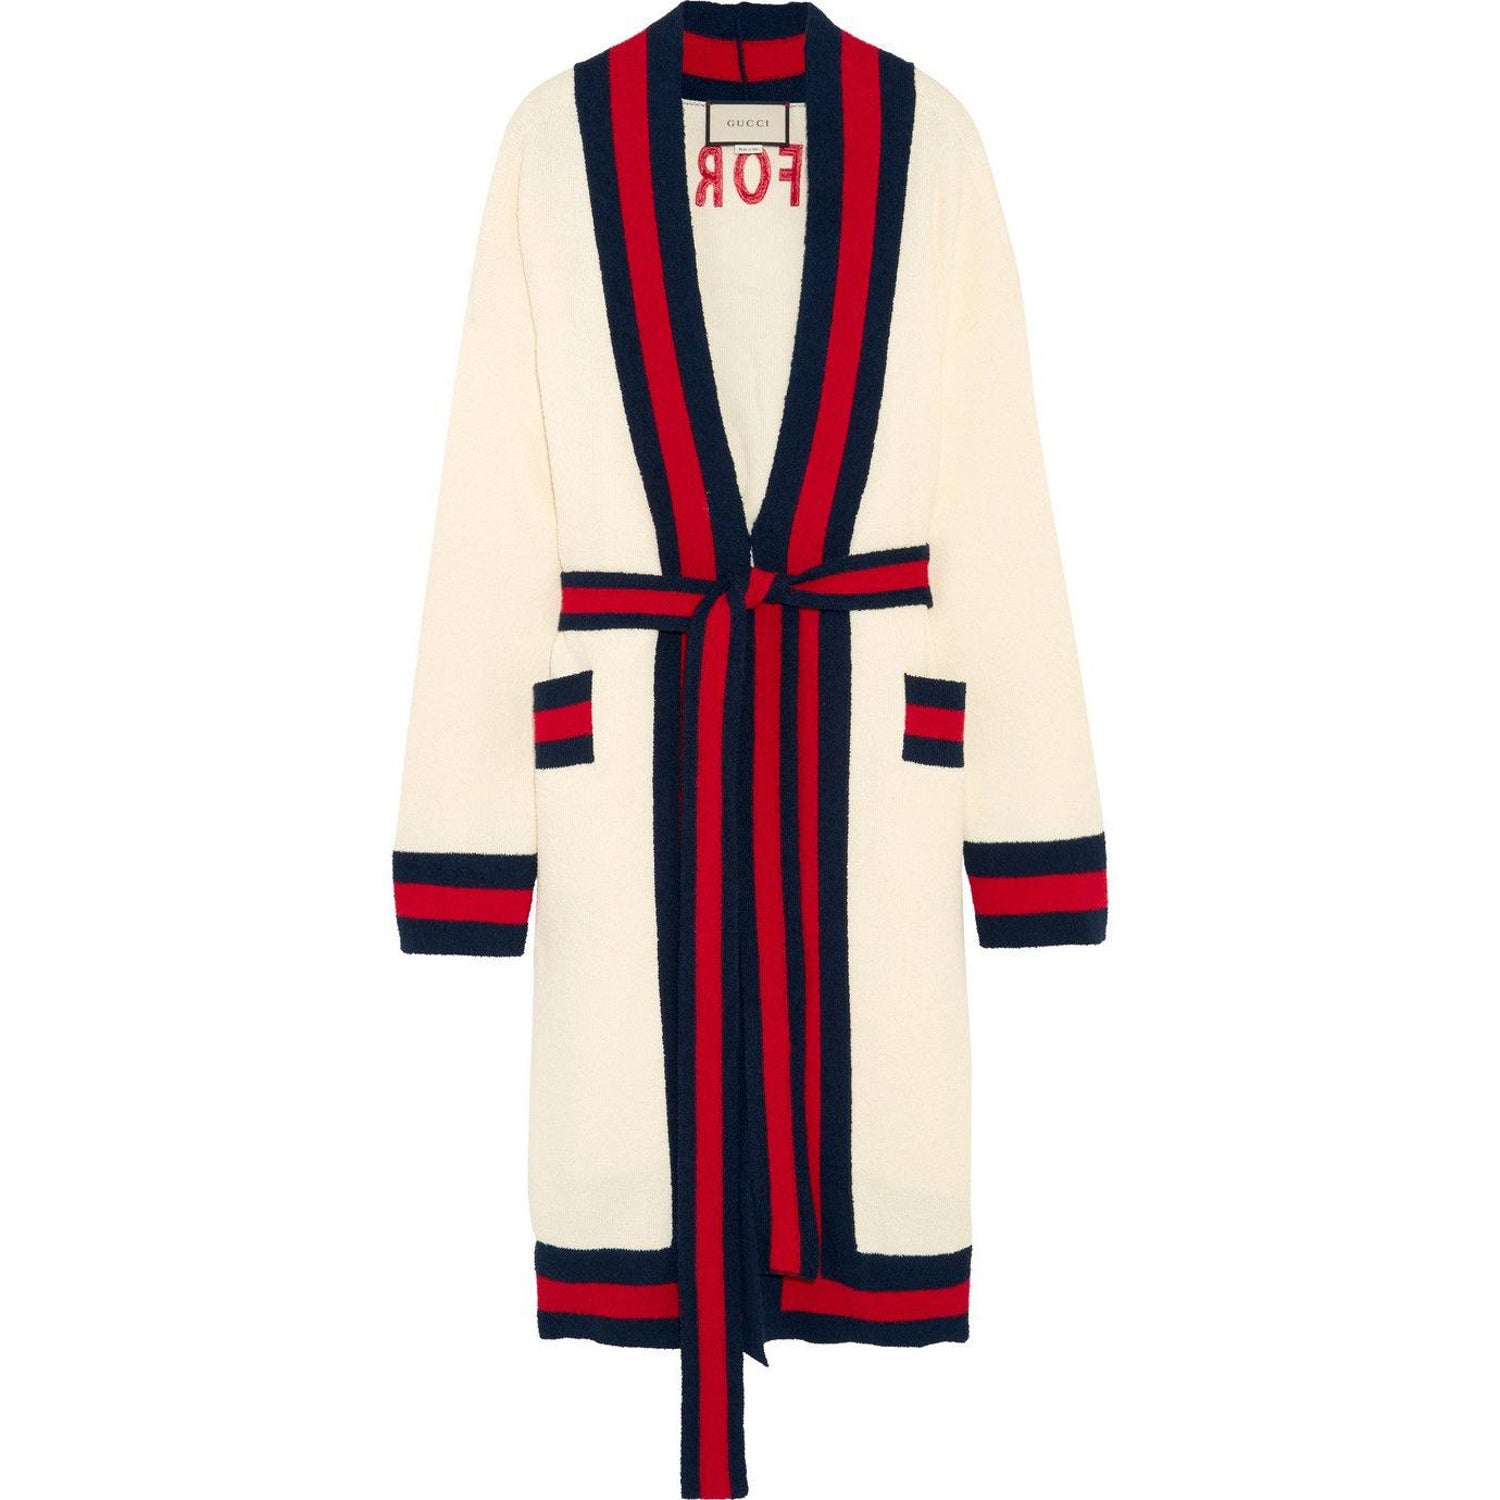 f93582e2 Gucci Embellished Striped Cotton-Blend Terry Cardigan at 1stdibs